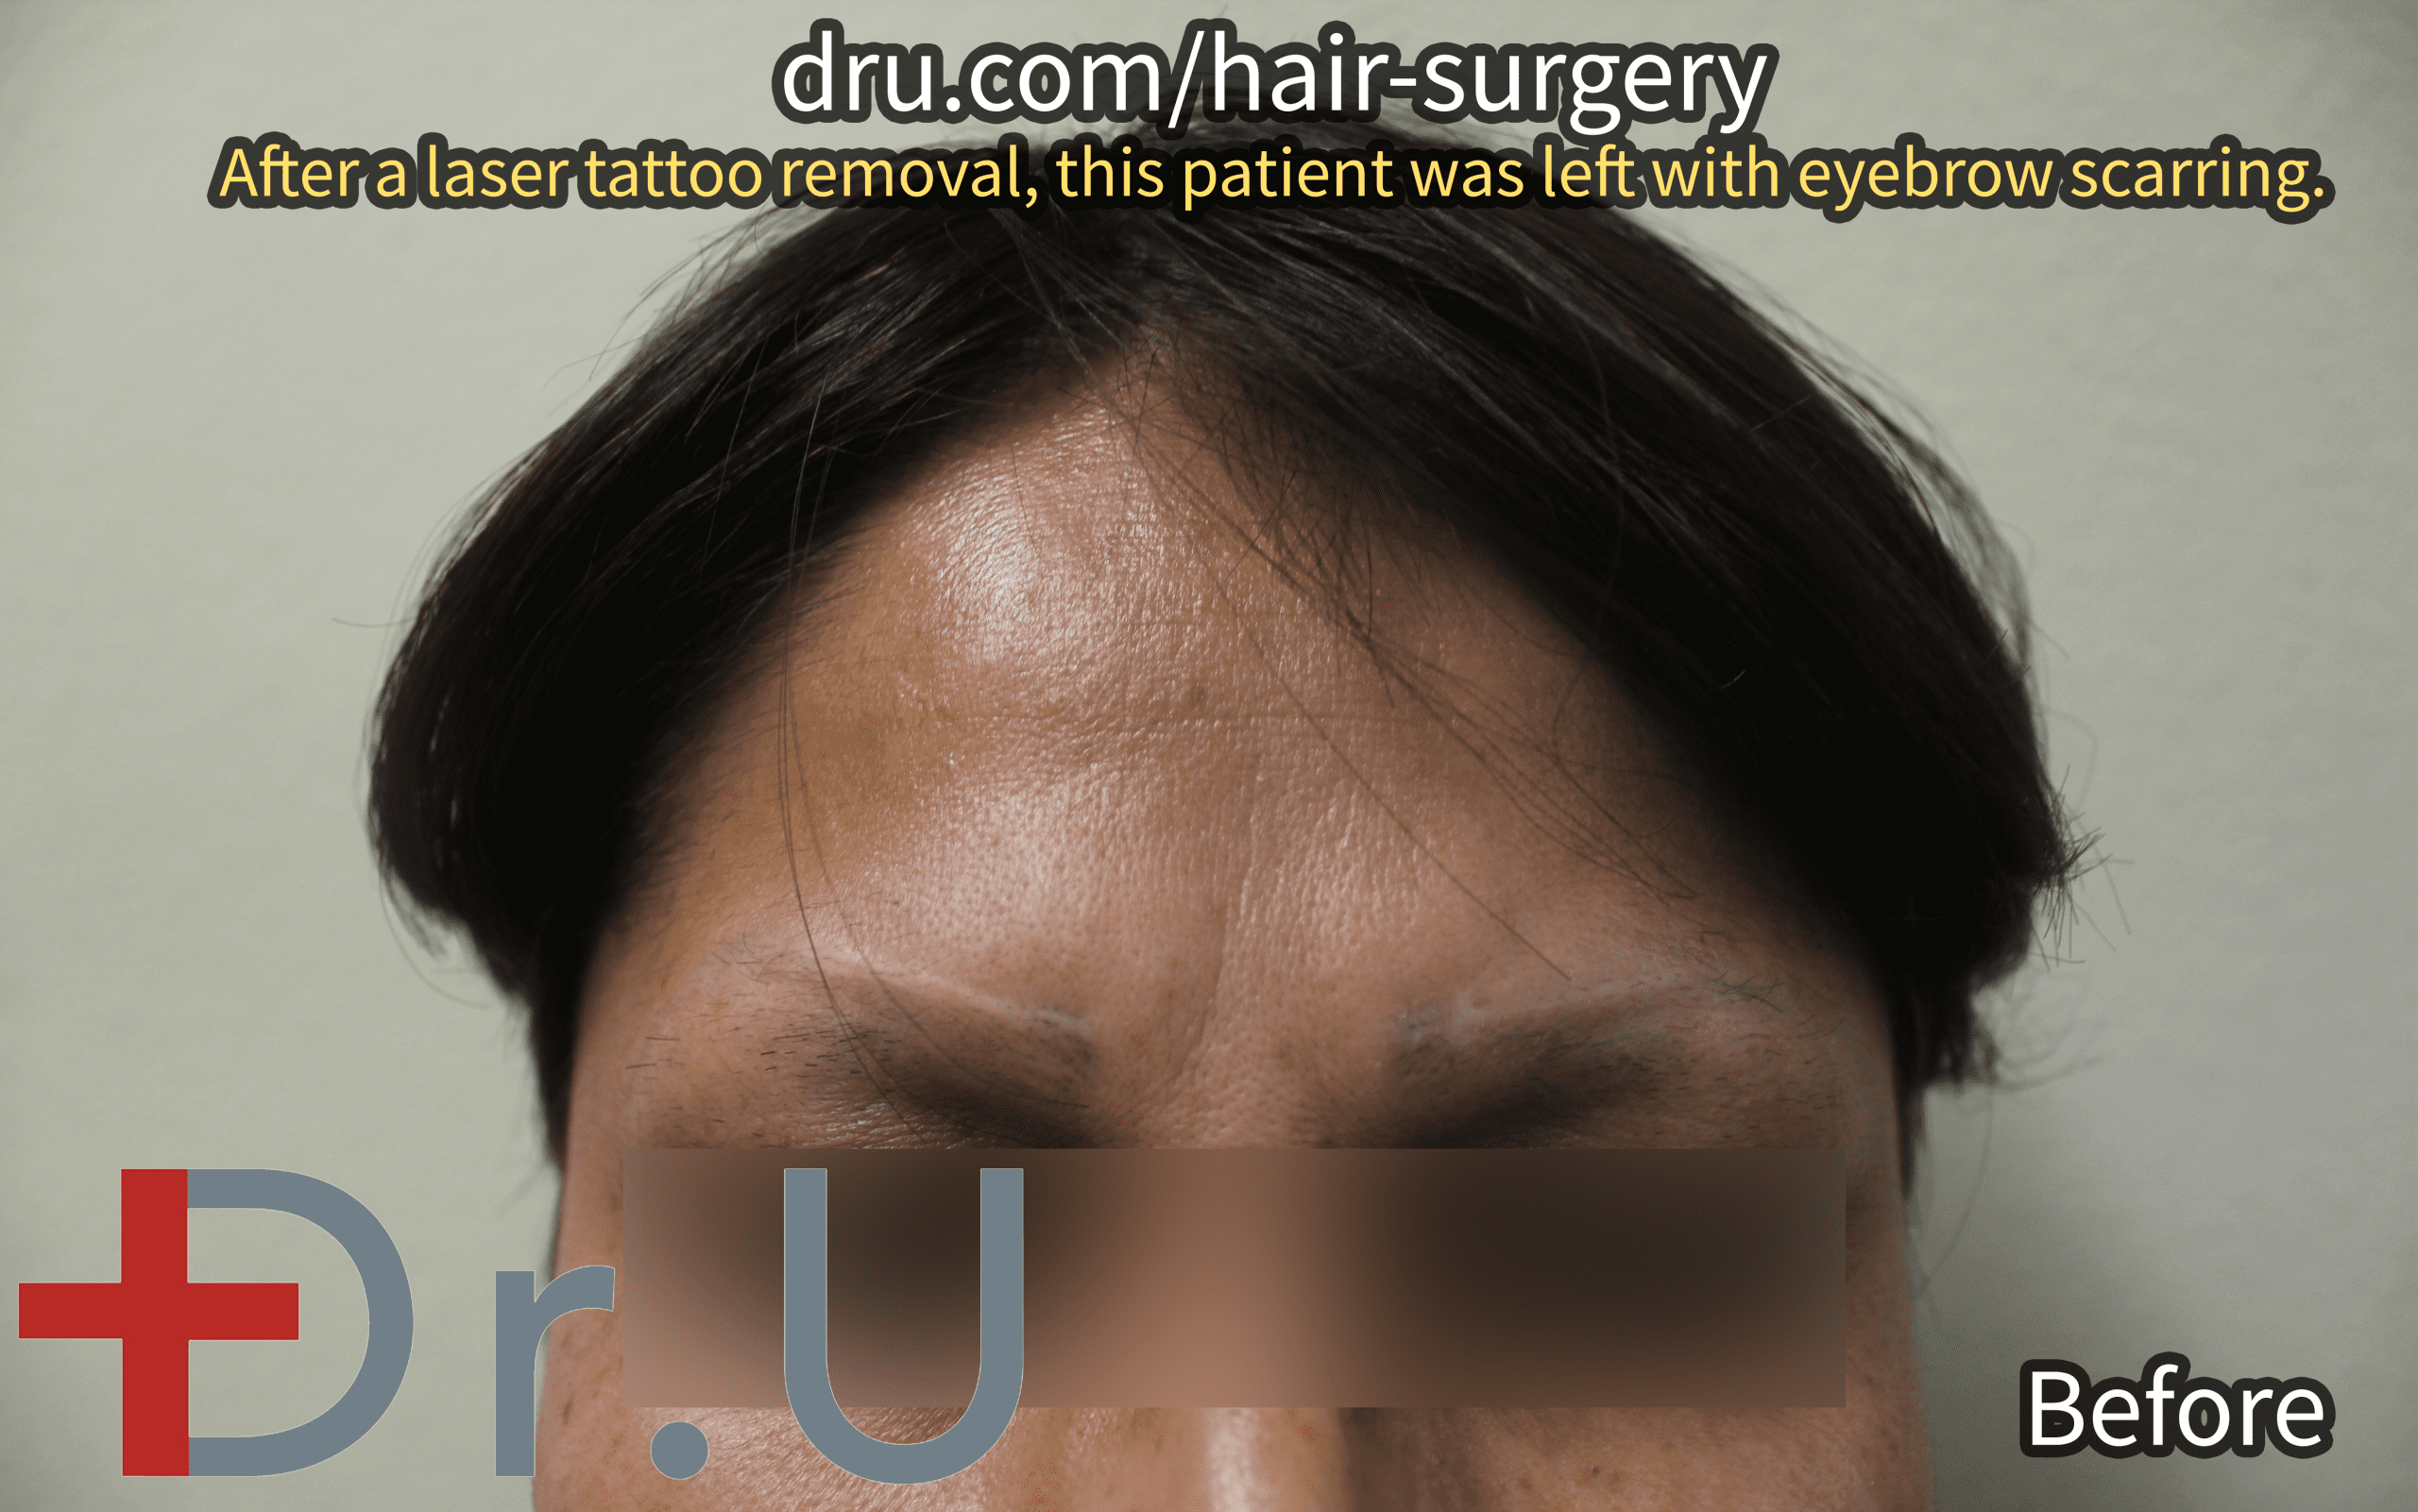 The California patient before her second eyebrow loss and tattoo scar repair surgery. She sought to diminish the appearance of her eyebrow scars.